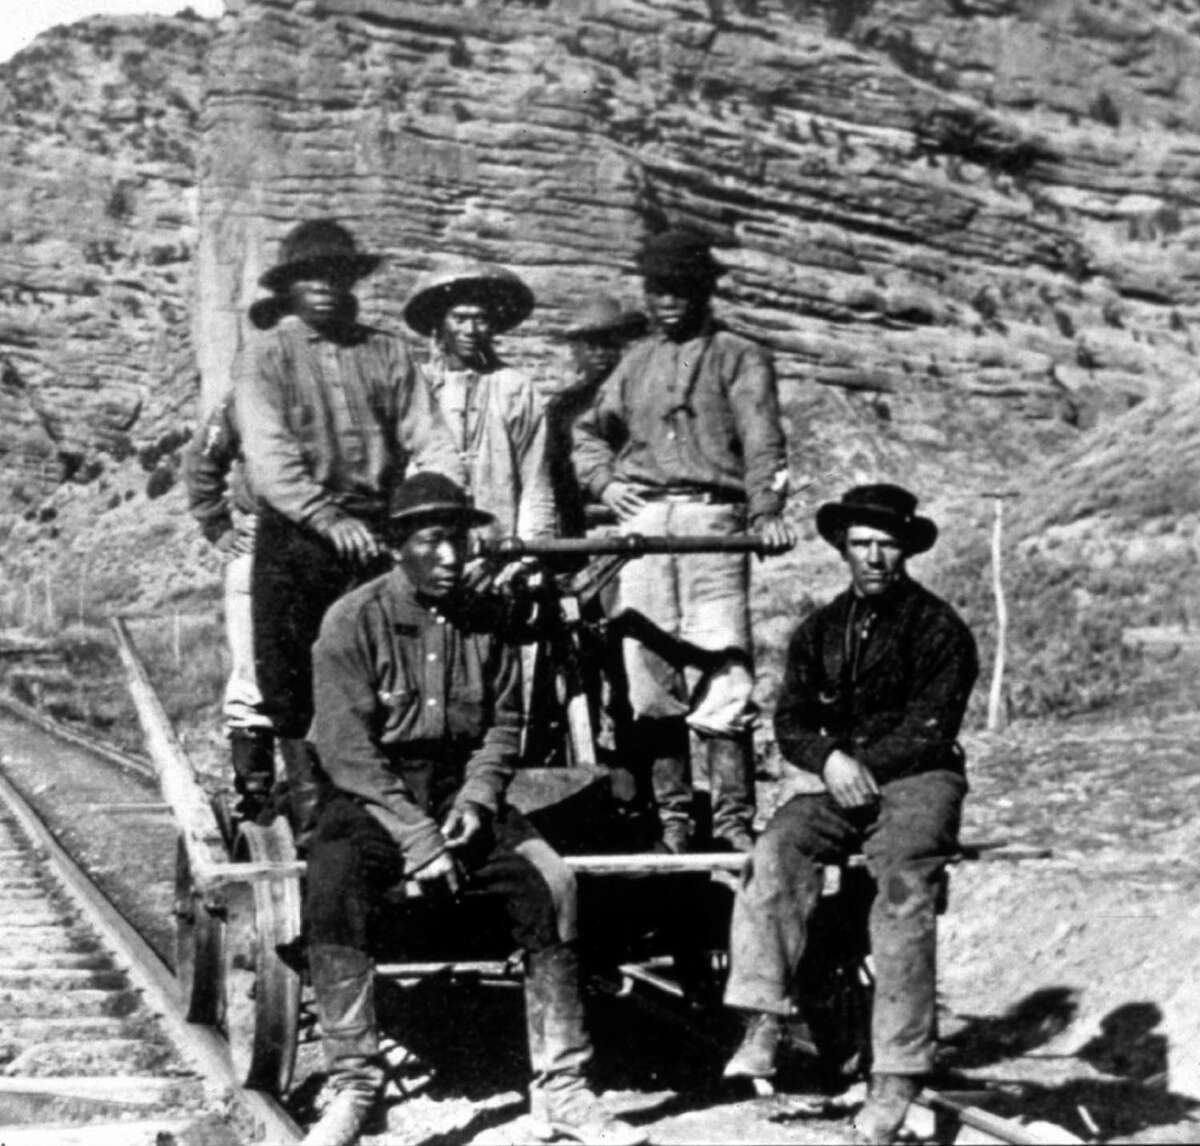 Initially hired for manual labor only, Chinese workers proved able at skilled work immediately. They served as masons, tracklayers and foremen.